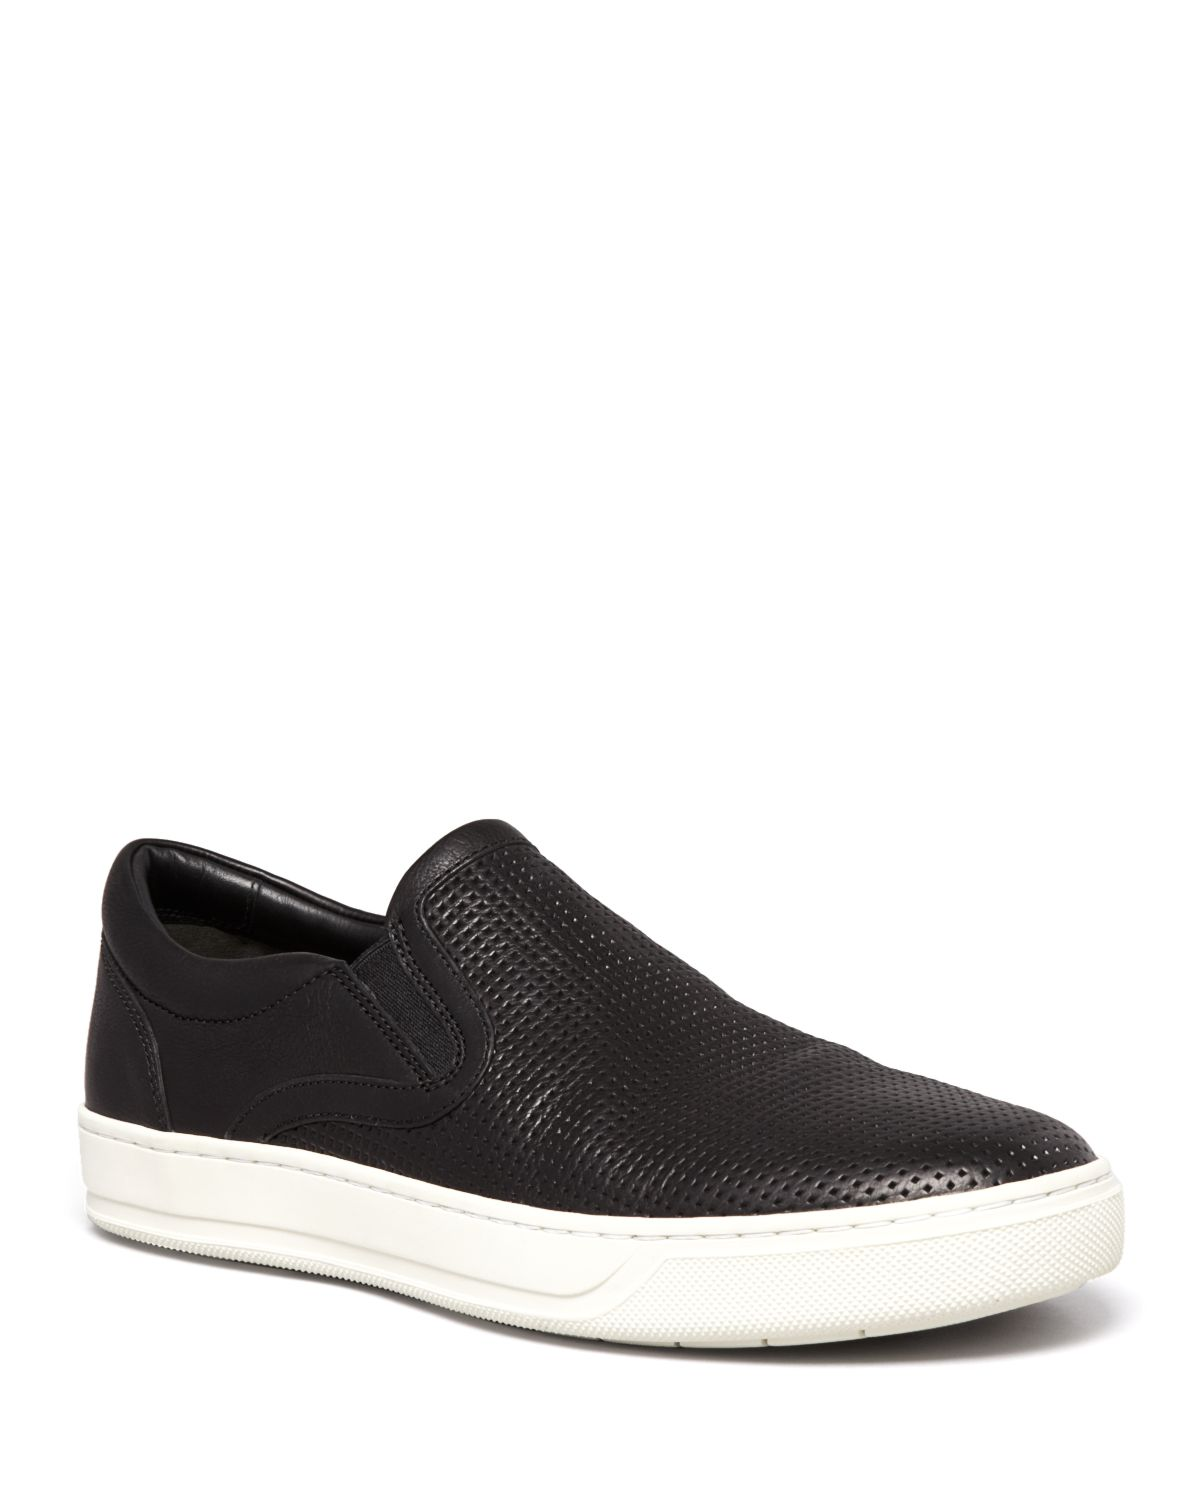 Vince Ace Perforated Slip-On Sneakers